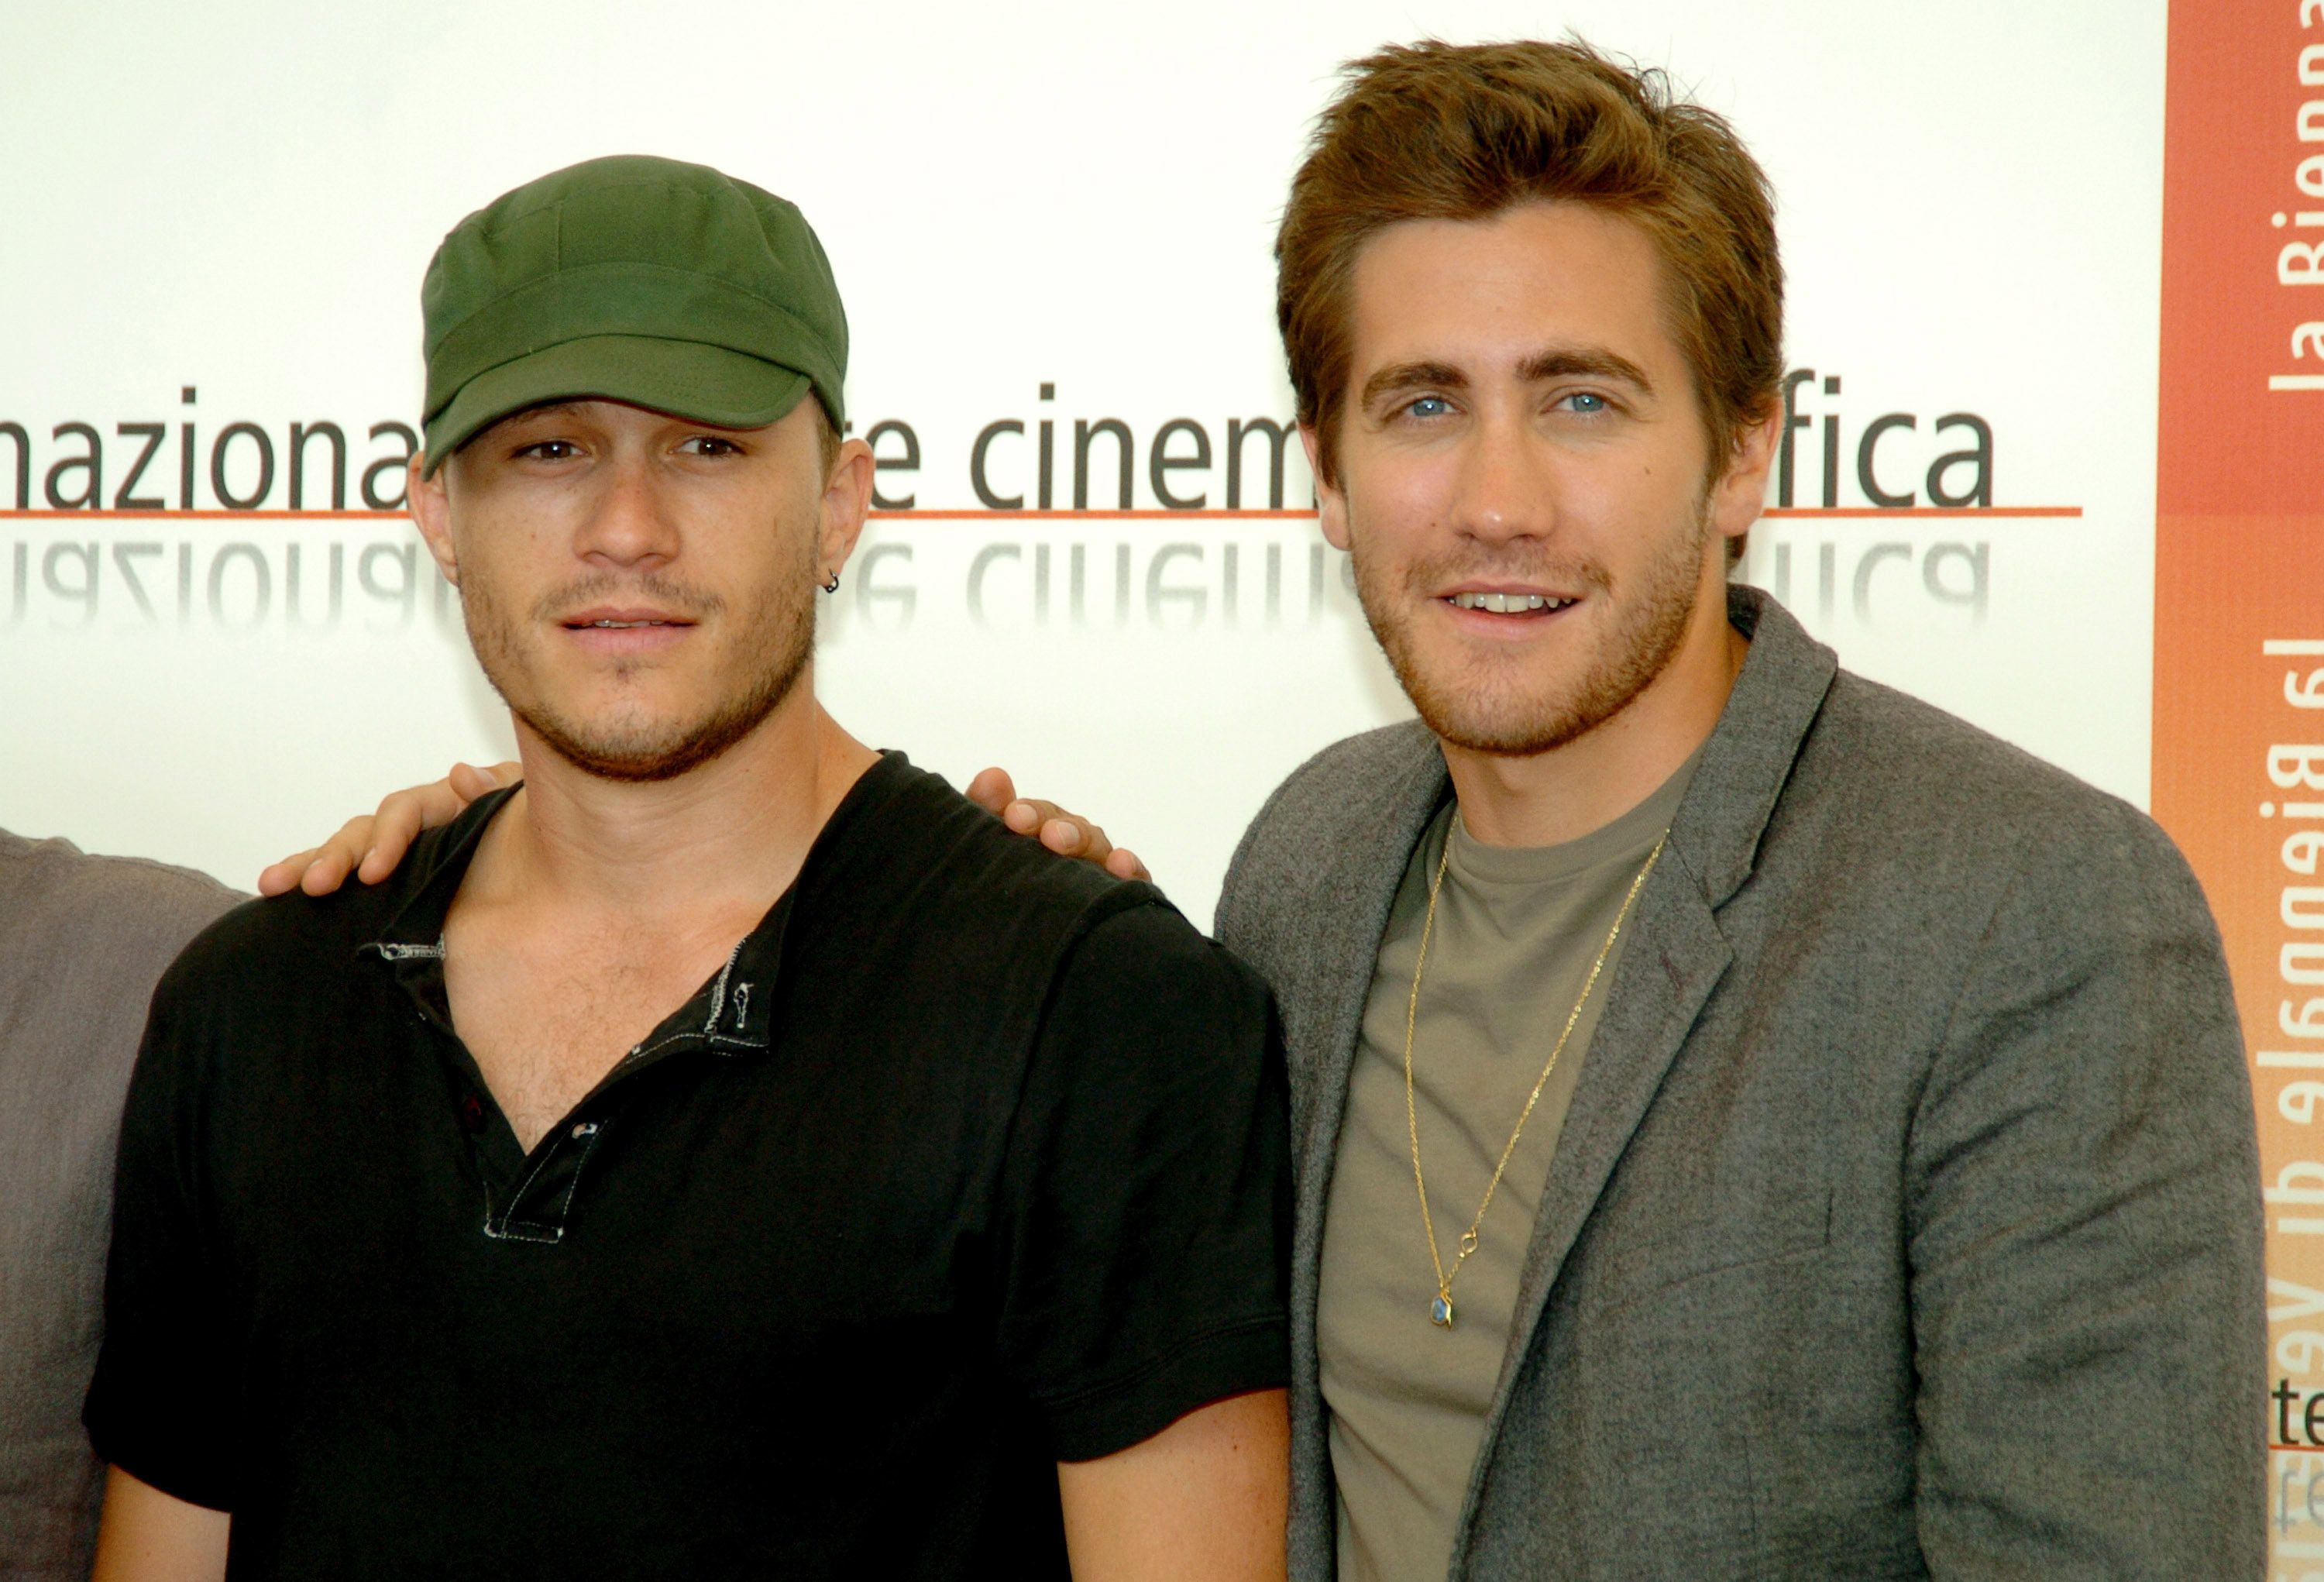 Heath Ledger and Jake Gyllenhaal (Photo by George Pimentel/WireImage)